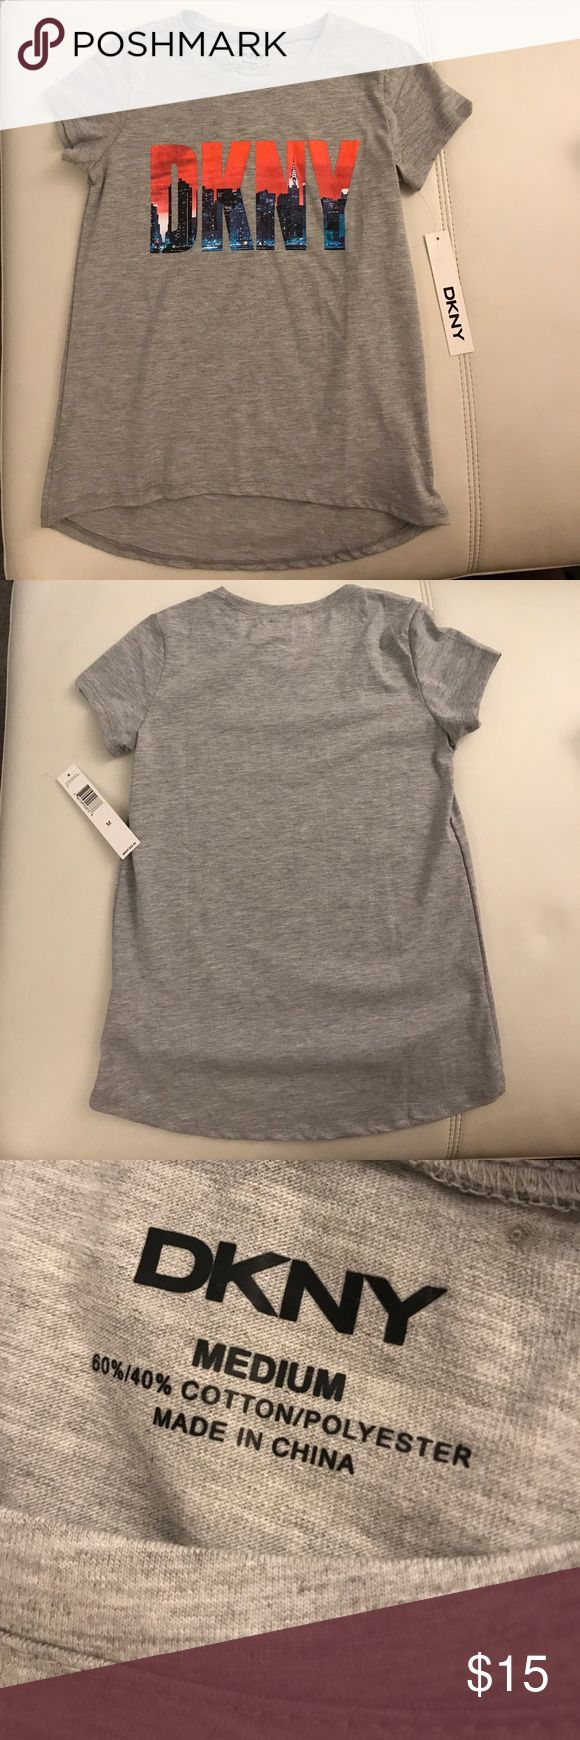 """DKNY Girls' Gray Printed Logo T-shirt Medium Authentic DKNY for Girls in Medium. I'm no expert when it comes to kids' sizing but on the tag it says """"Girls 7-16 Top"""". New with tags still attached. DKNY Shirts & Tops Tees - Long Sleeve"""